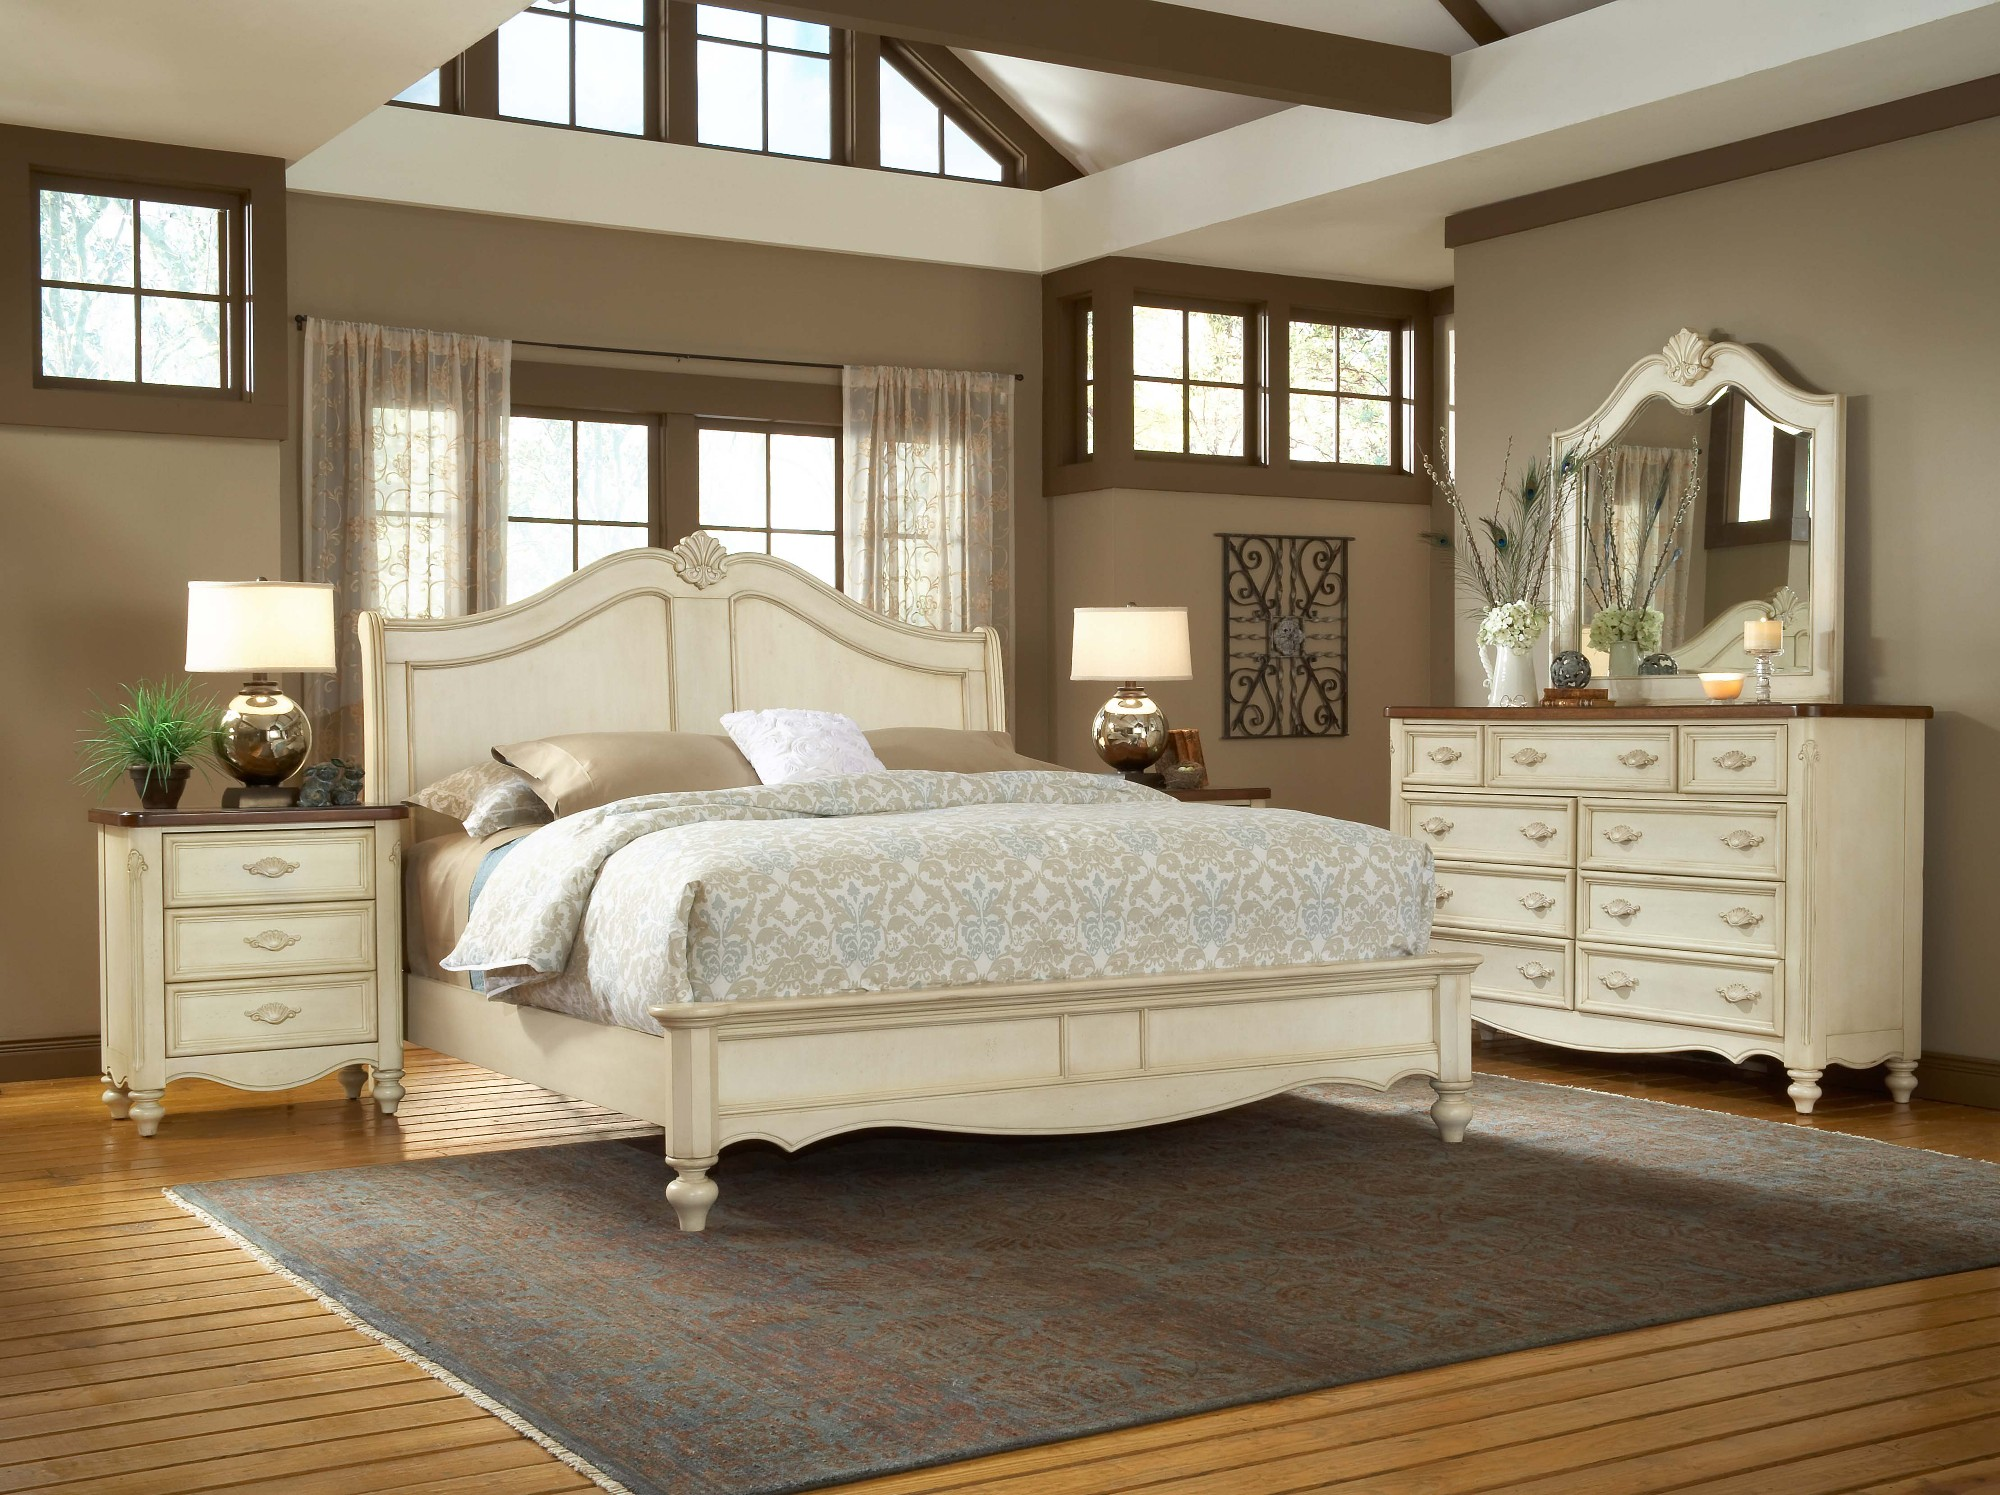 Bedroom Furniture Sets Long Island (Image 2 of 10)